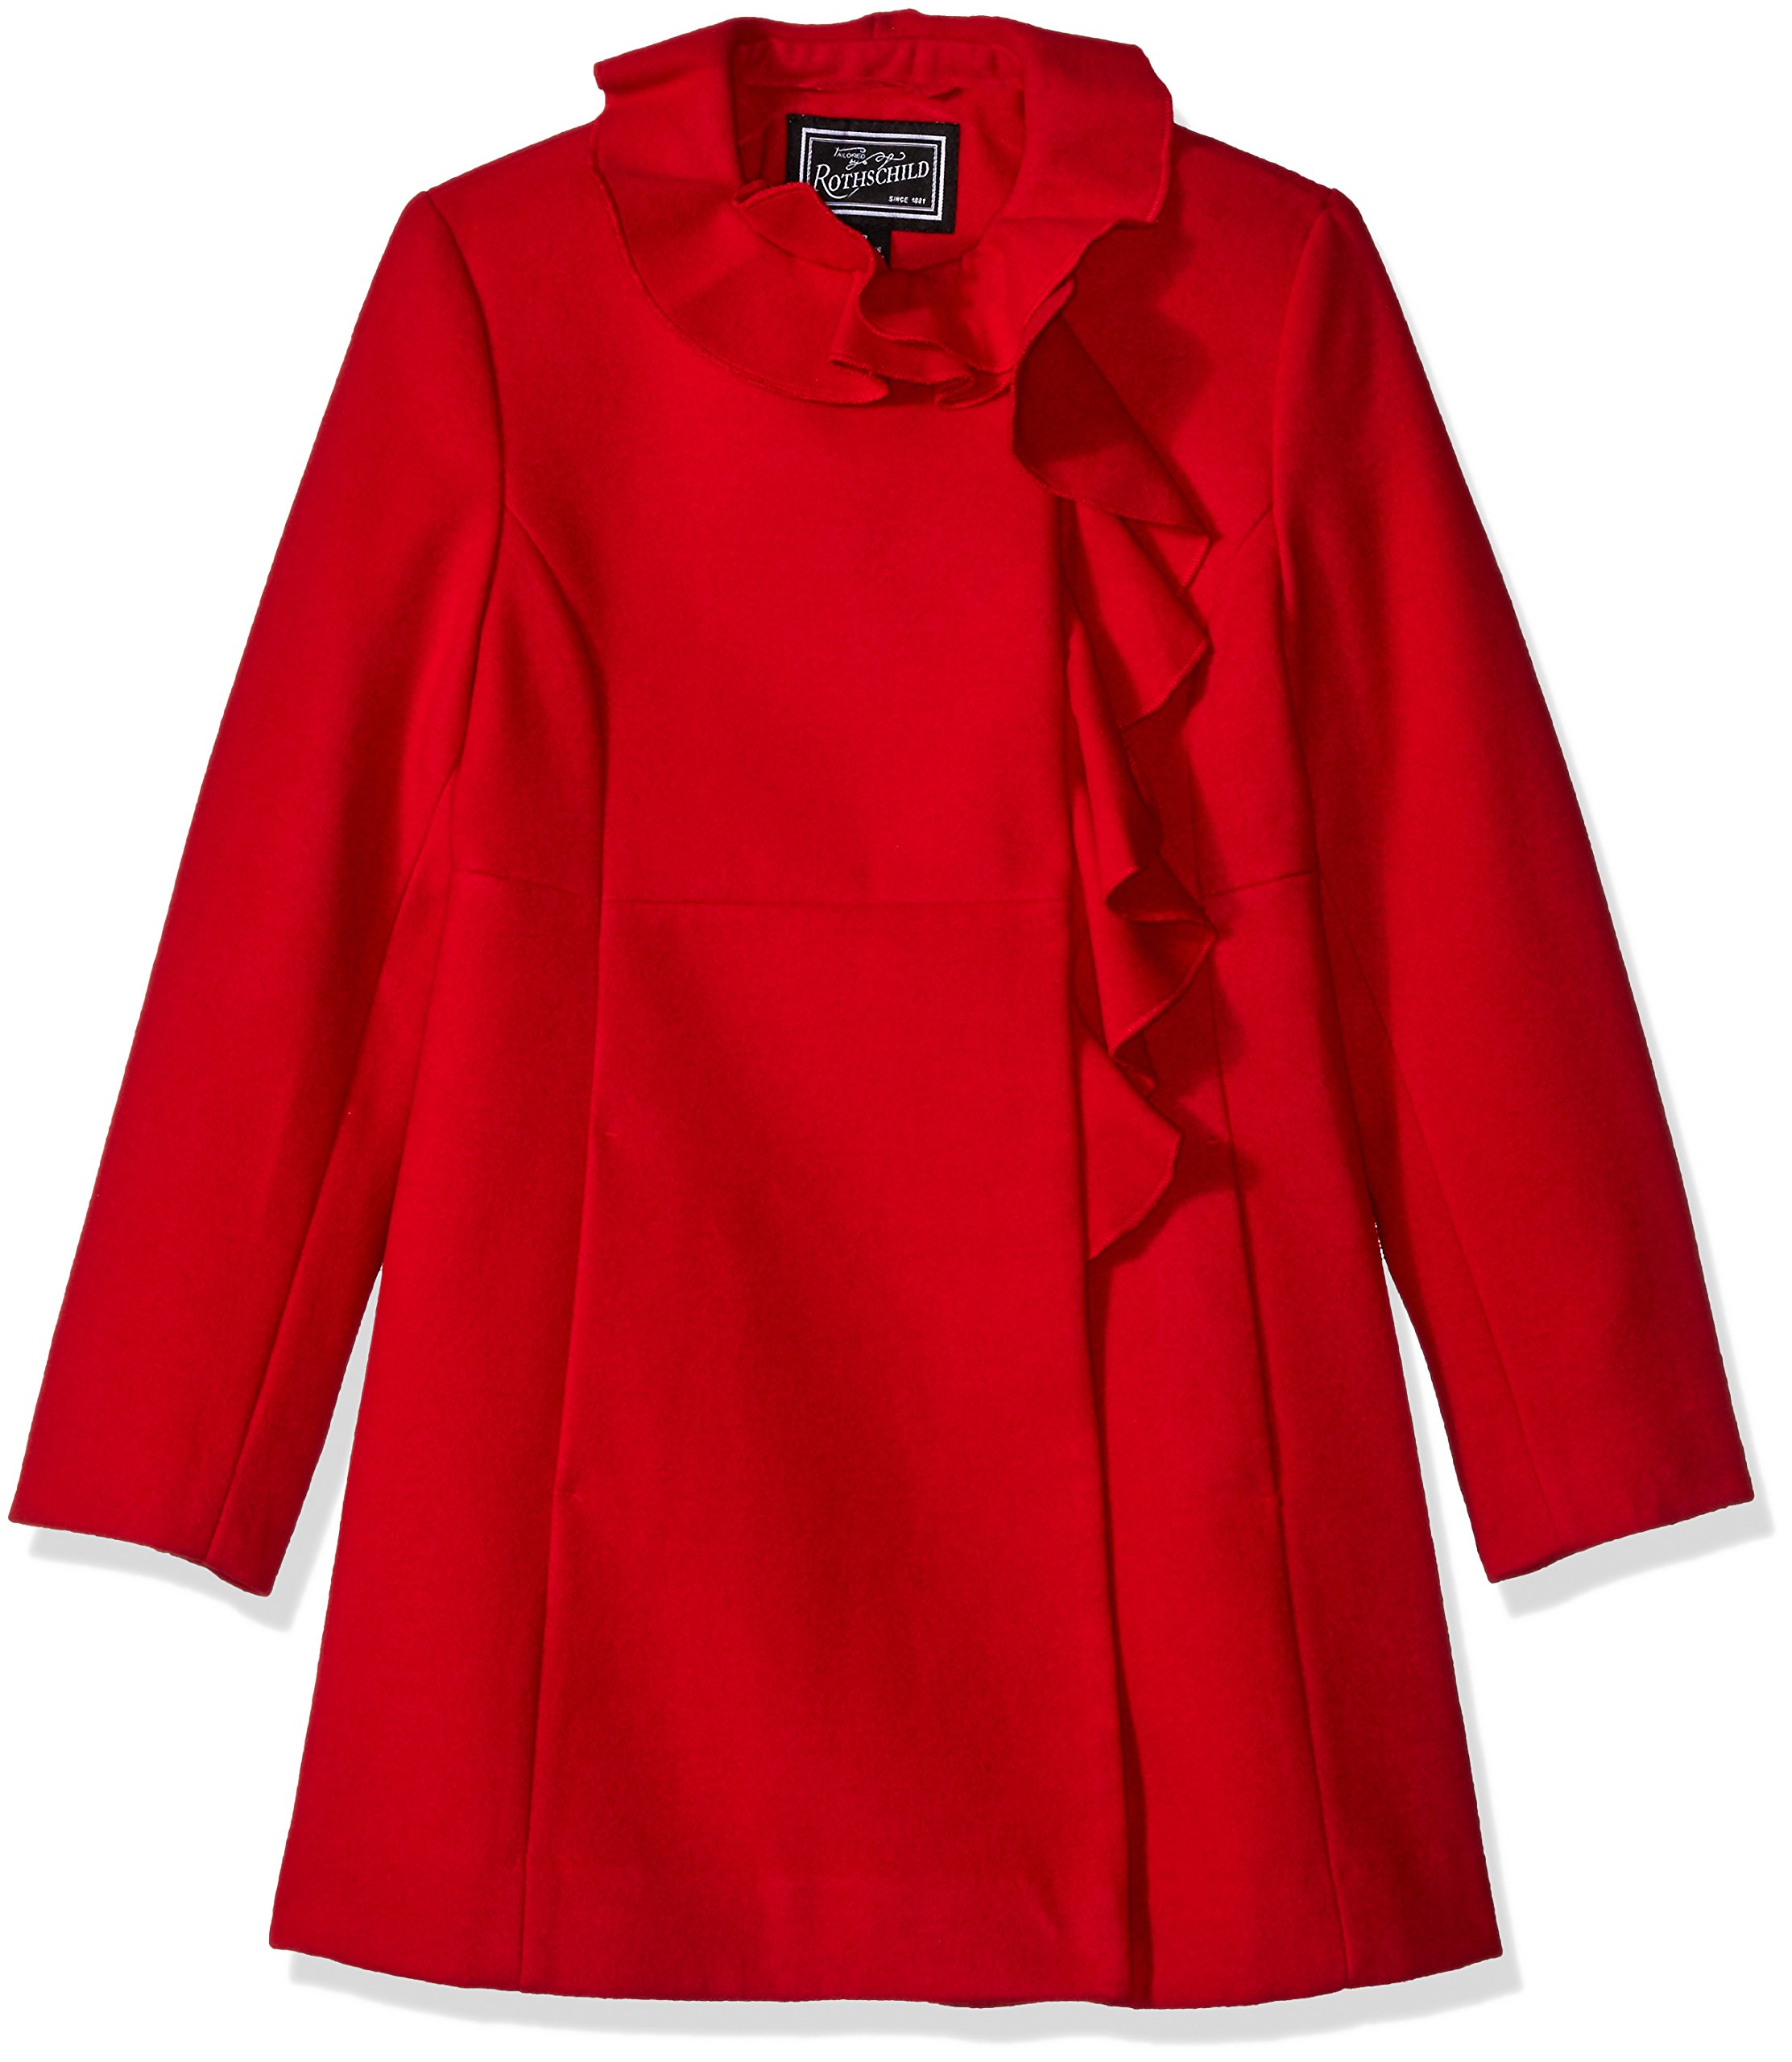 Rothschild Big Girls' Faux Wool Coat with Ruffle Trim, Red, 7